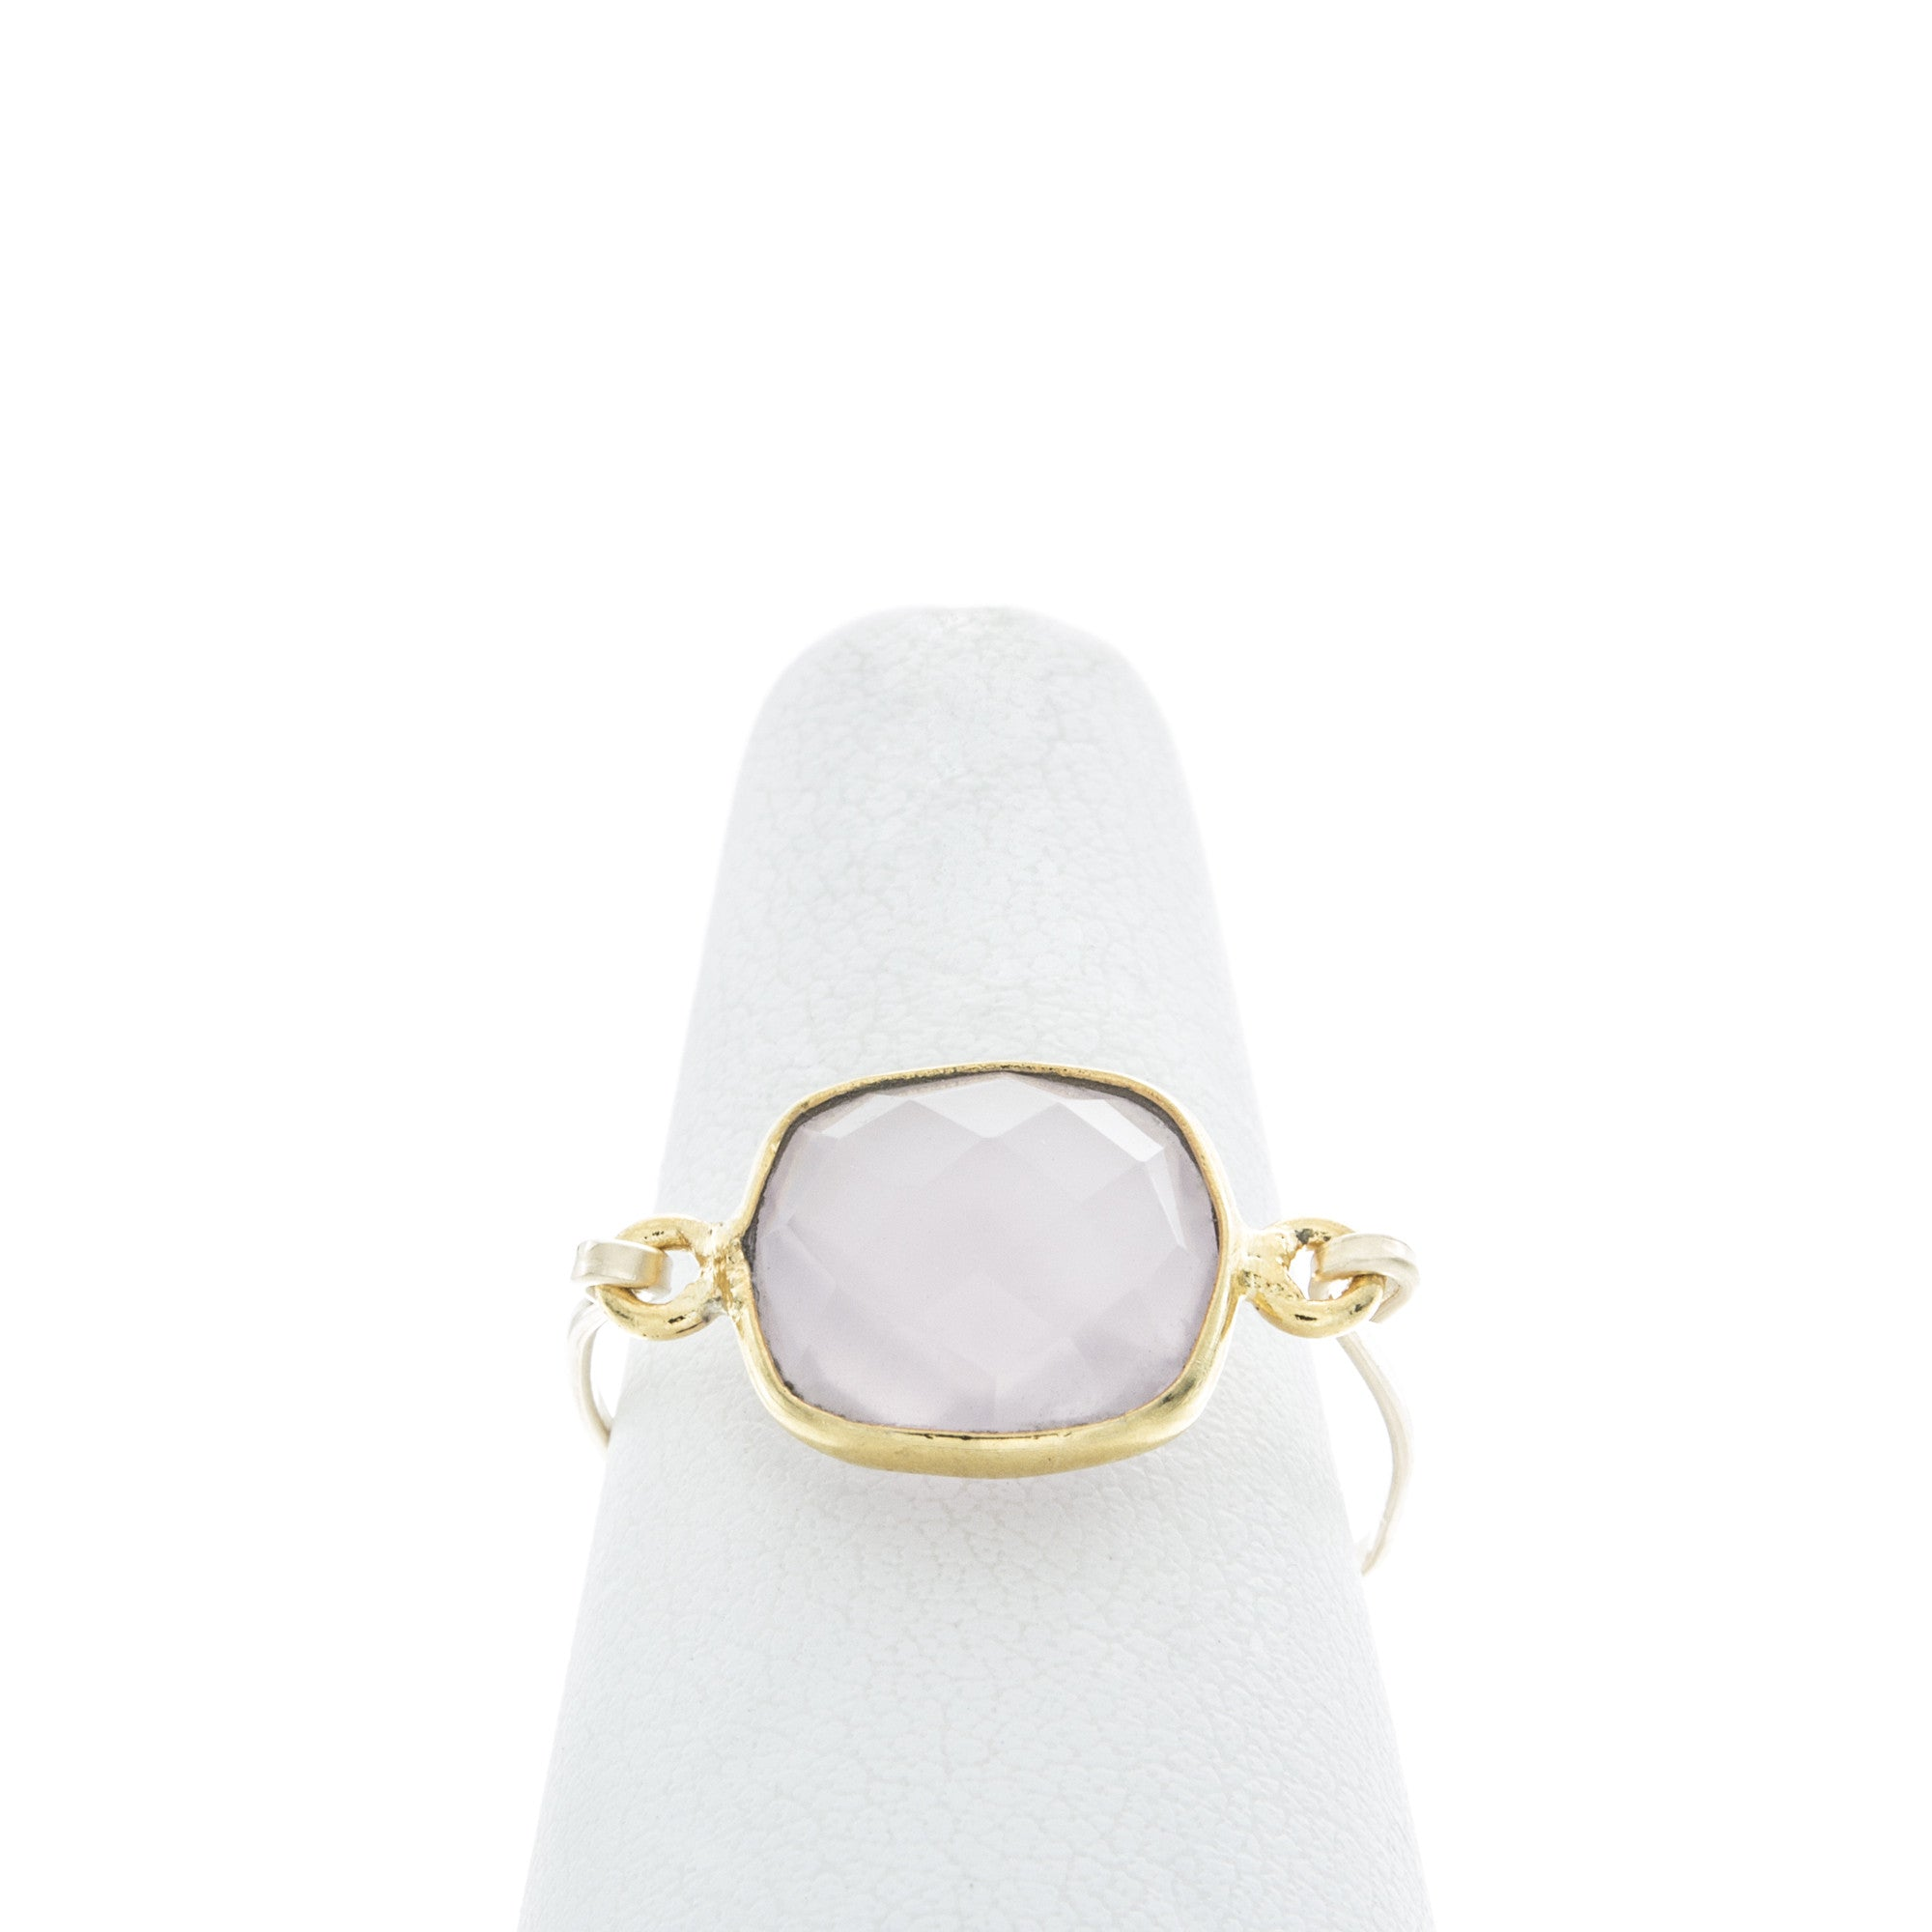 Square Gemstone Rings